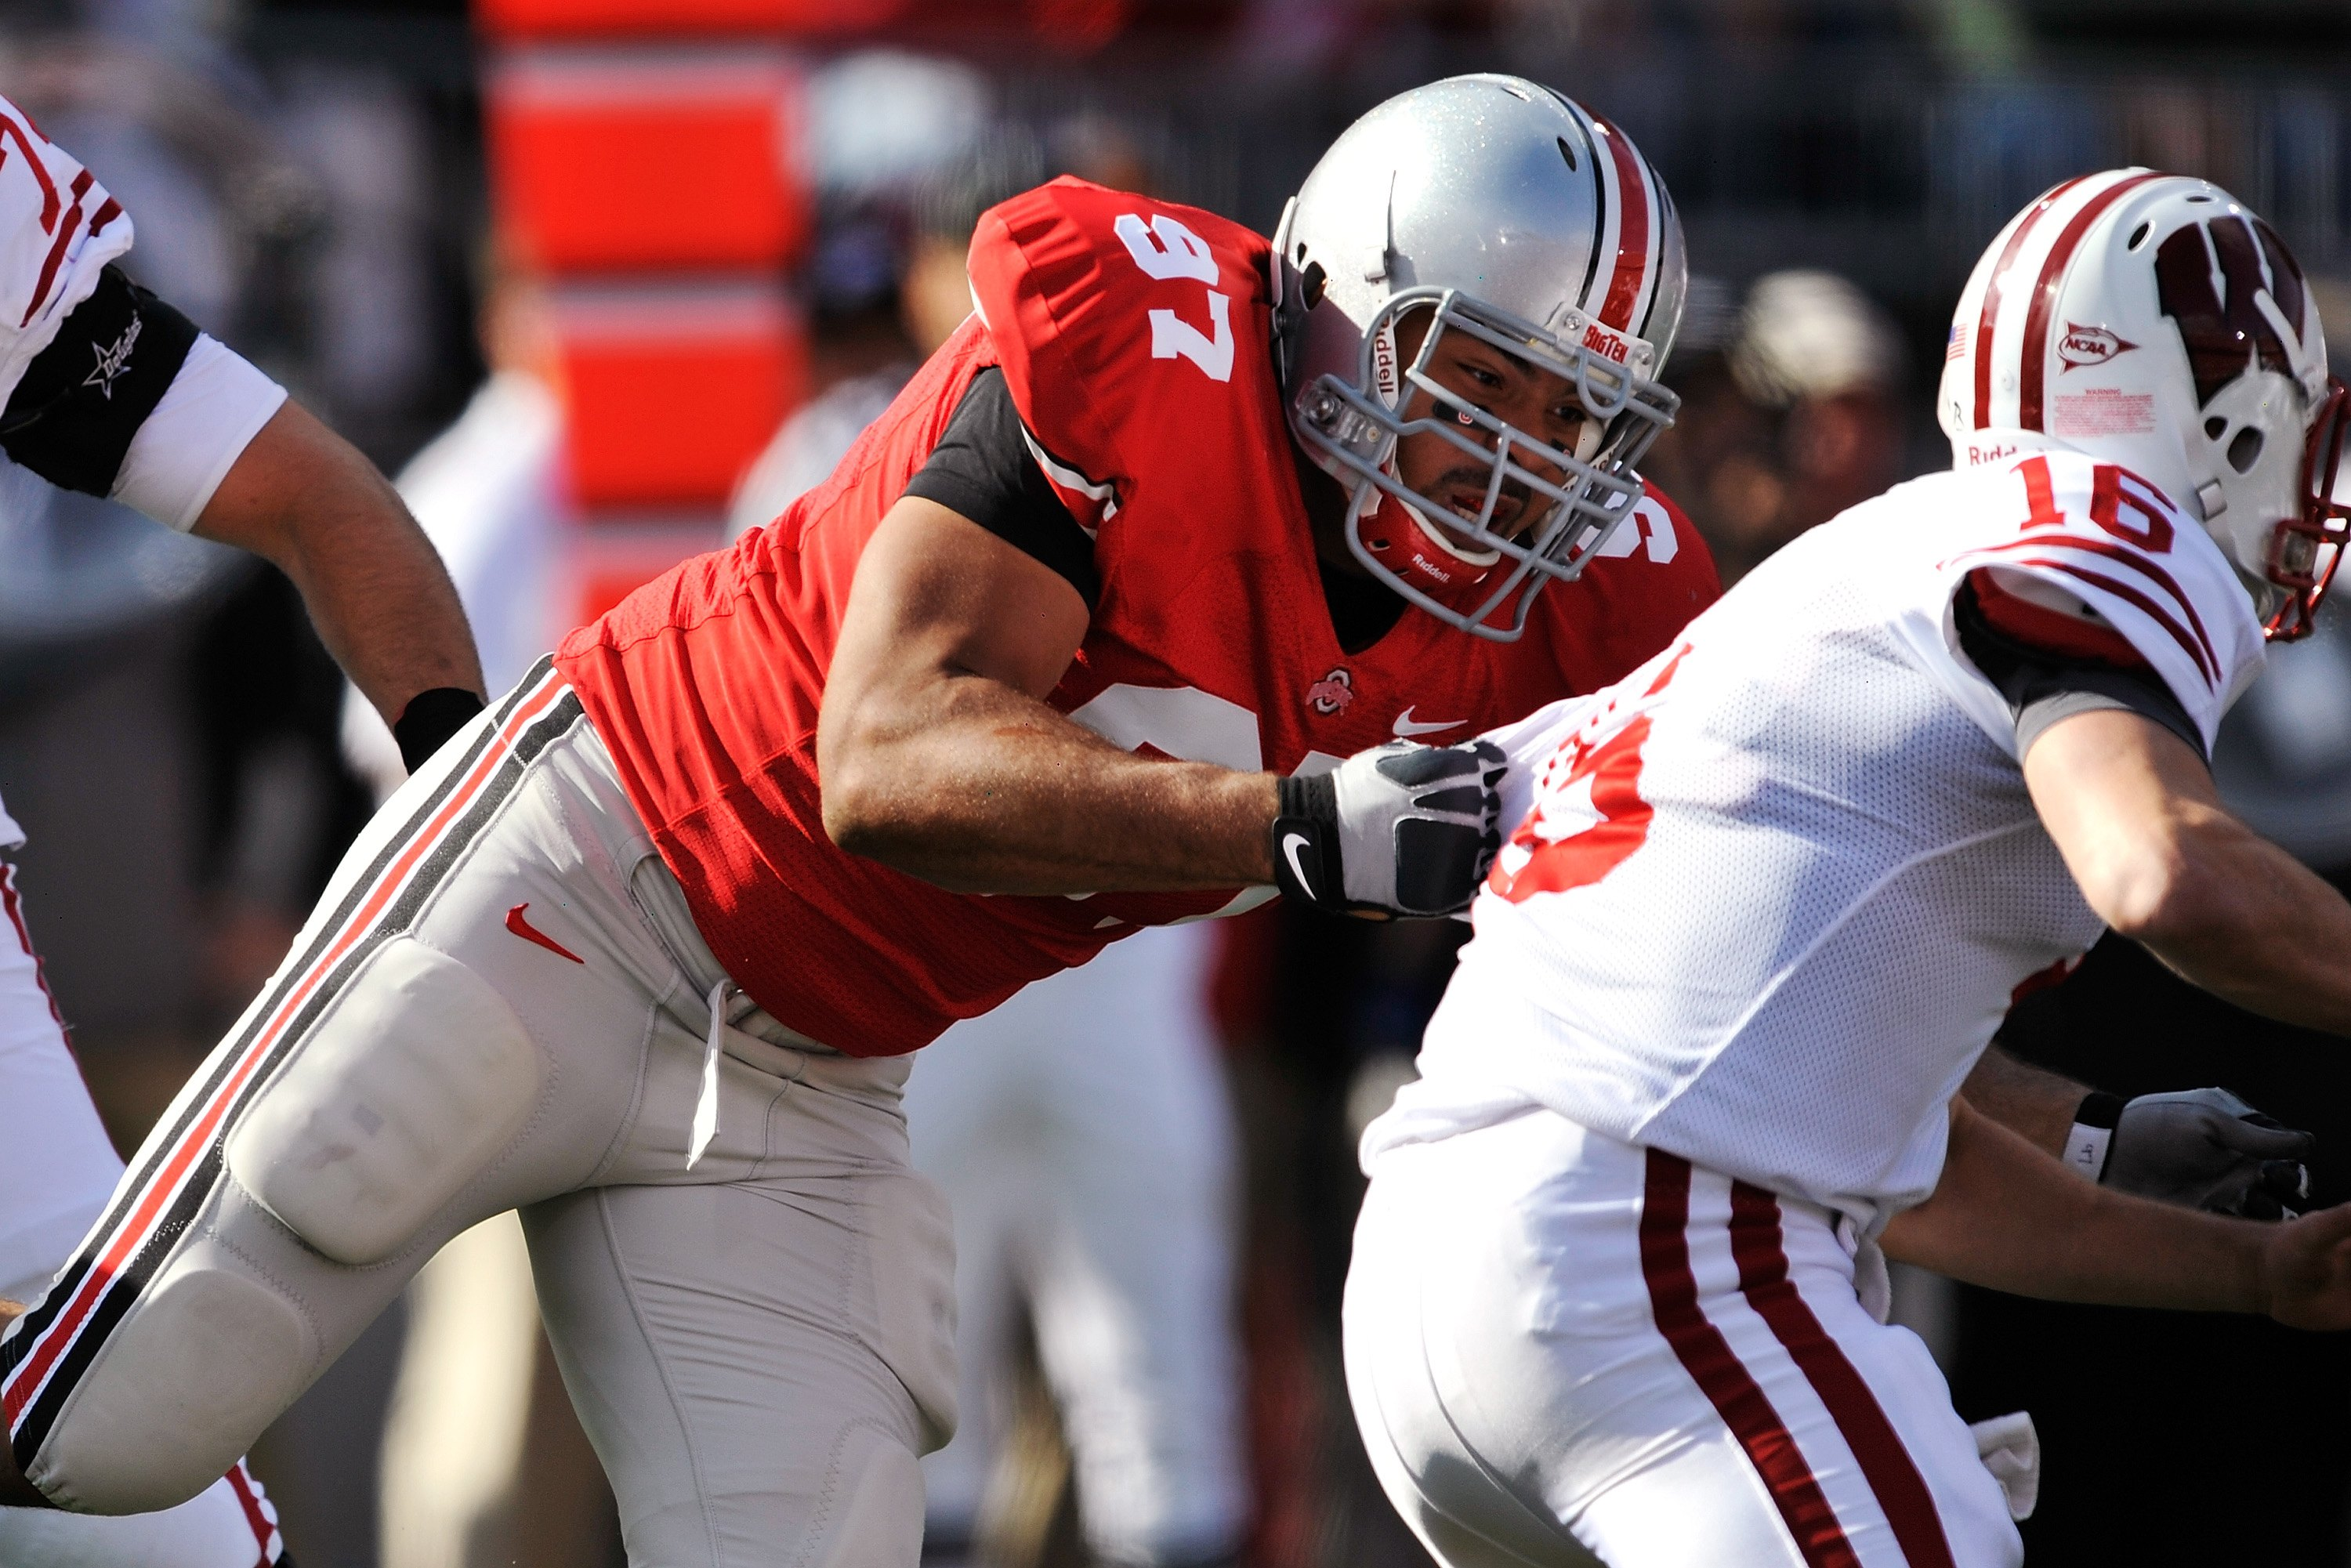 COLUMBUS, OH - OCTOBER 10:  Defensive lineman Cameron Heyward #97of the Ohio State Buckeyes makes a tackle on quarterback Scott Tolzien #16 of the Wisconsin Badgers at Ohio Stadium on October 10, 2009 in Columbus, Ohio.  (Photo by Jamie Sabau/Getty Images